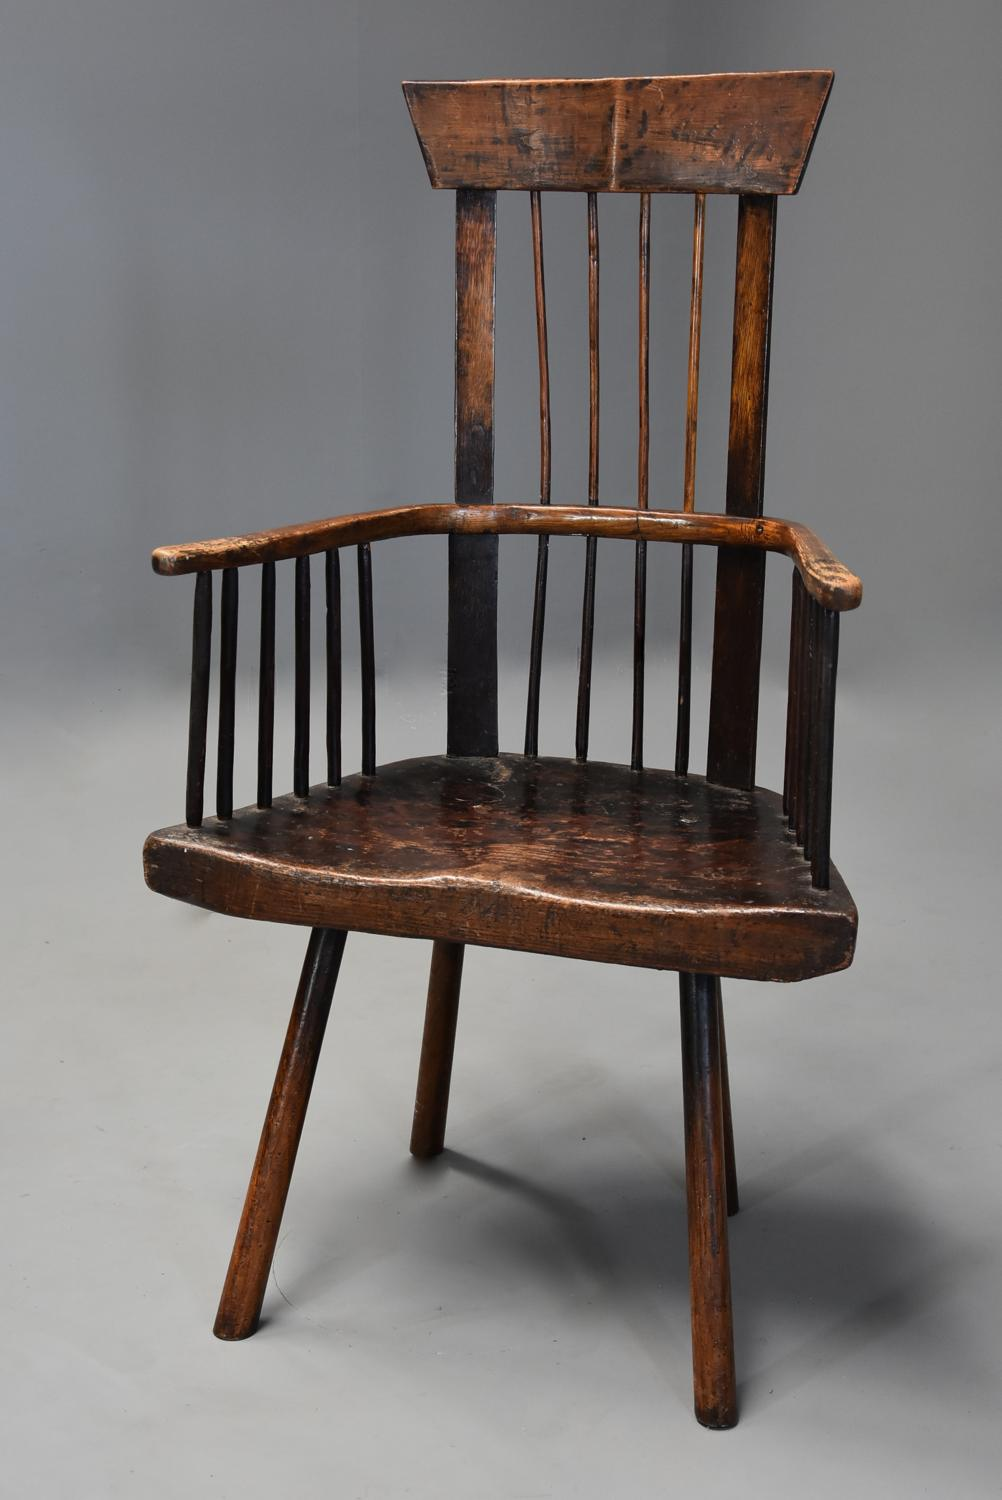 19th century Welsh primitive ash & elm comb back armchair